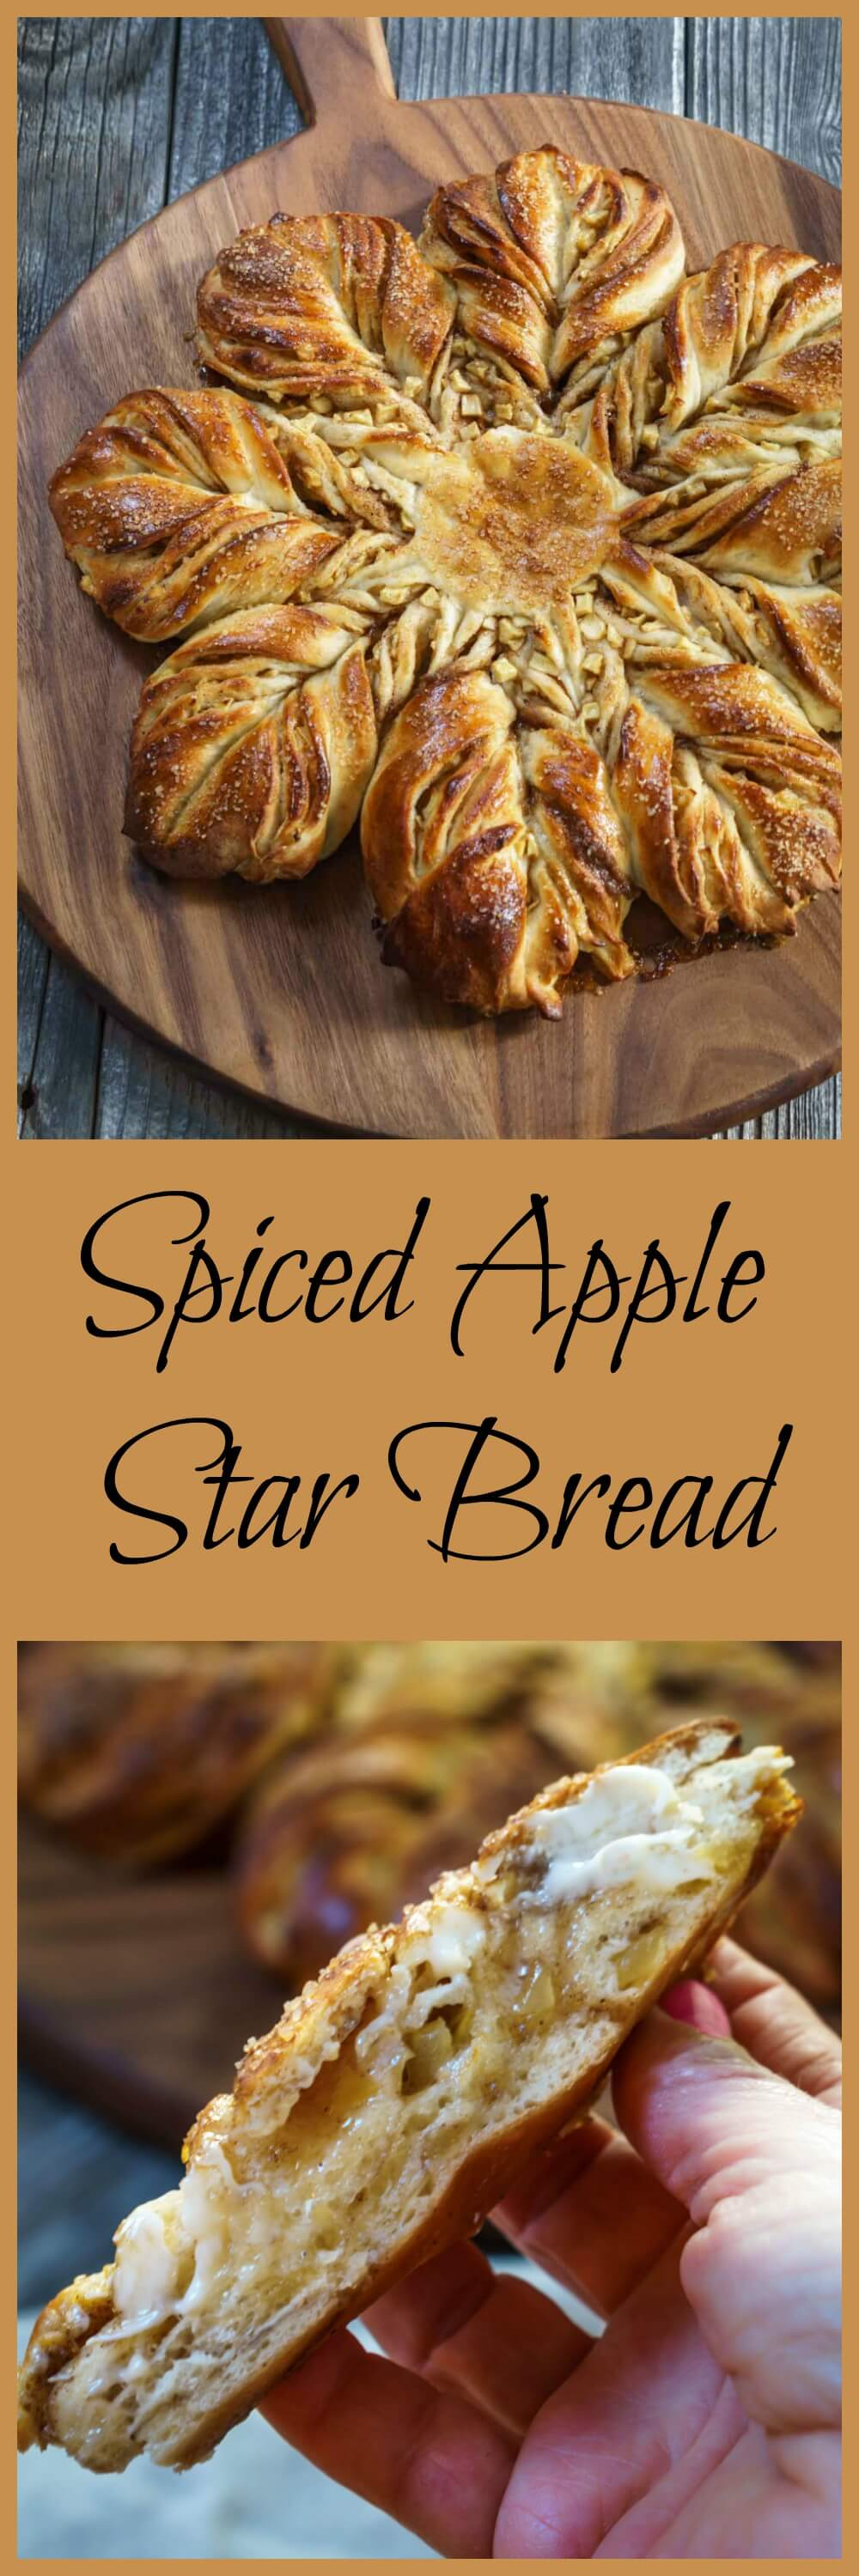 Spiced Apple Star Bread is so good you can eat it with a cup of soup or as a dessert. It's buttery, tender, and warm from the fall spices. | HostessAtHeart.com #homemade #comfortfood | how to make bread #baking #breadmaking